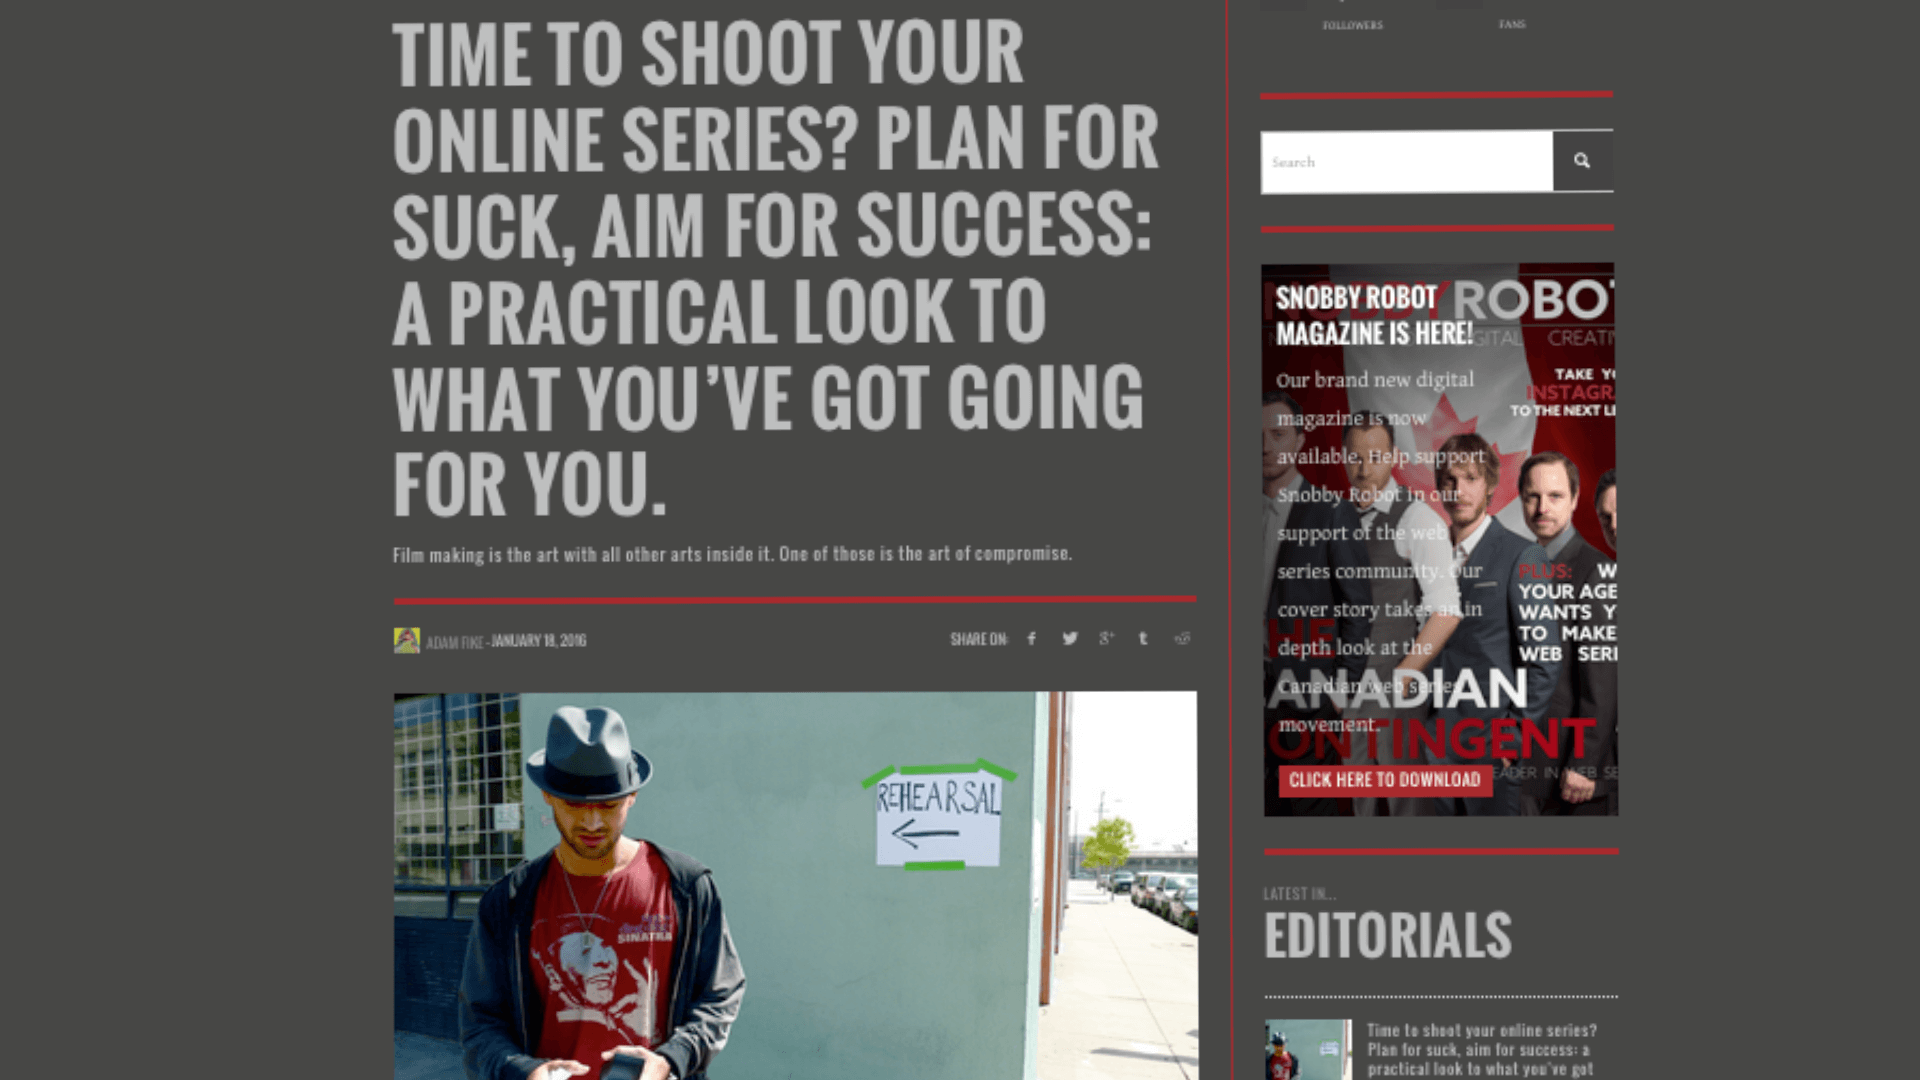 Filming your online series? Plan for suck, aim for success